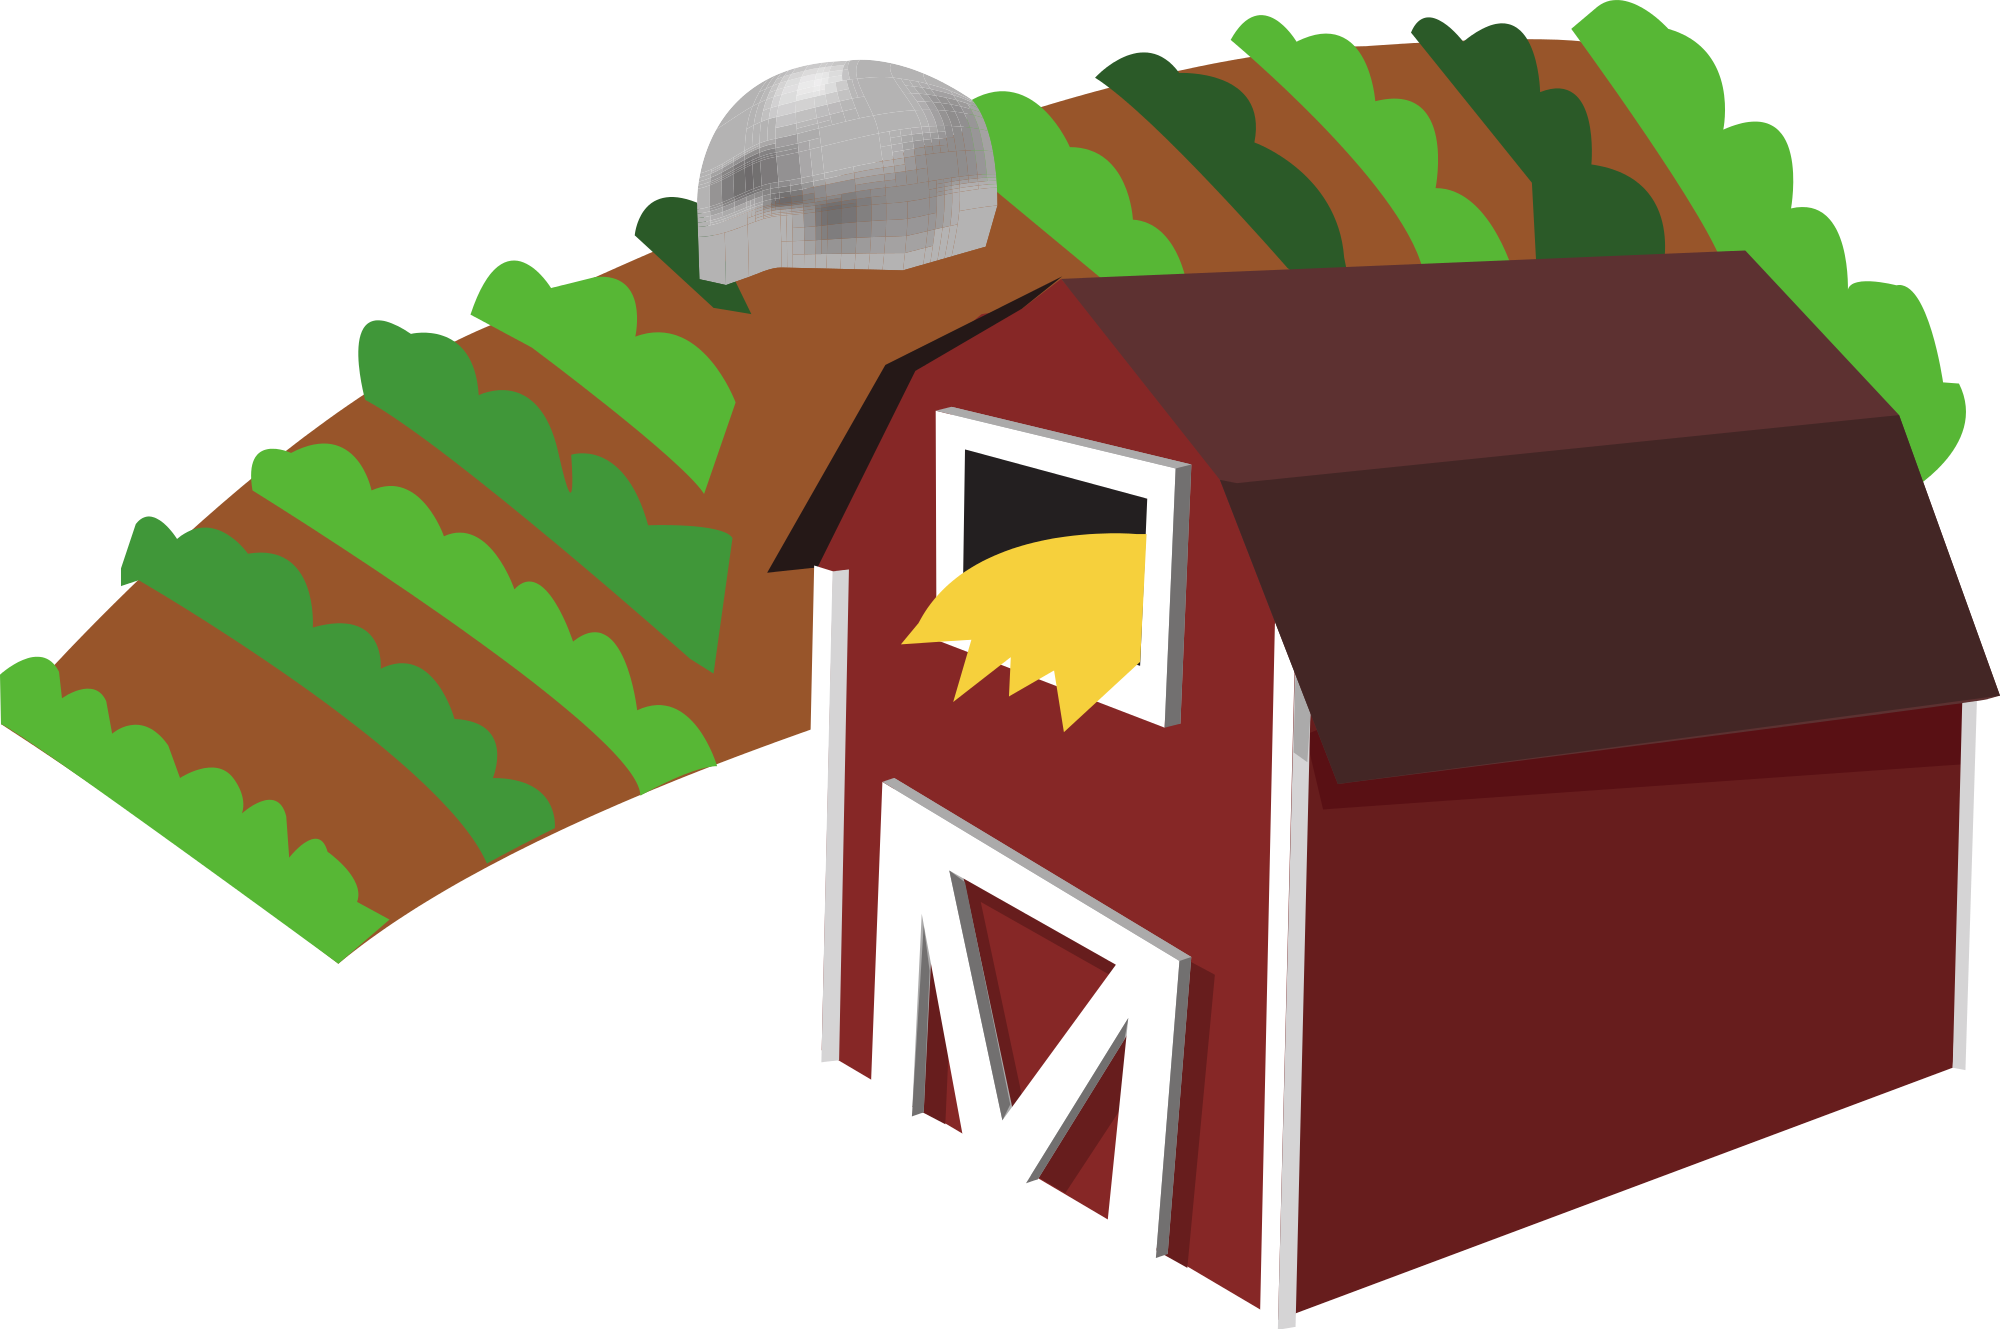 Farm transparent. Barn clipart pencil and